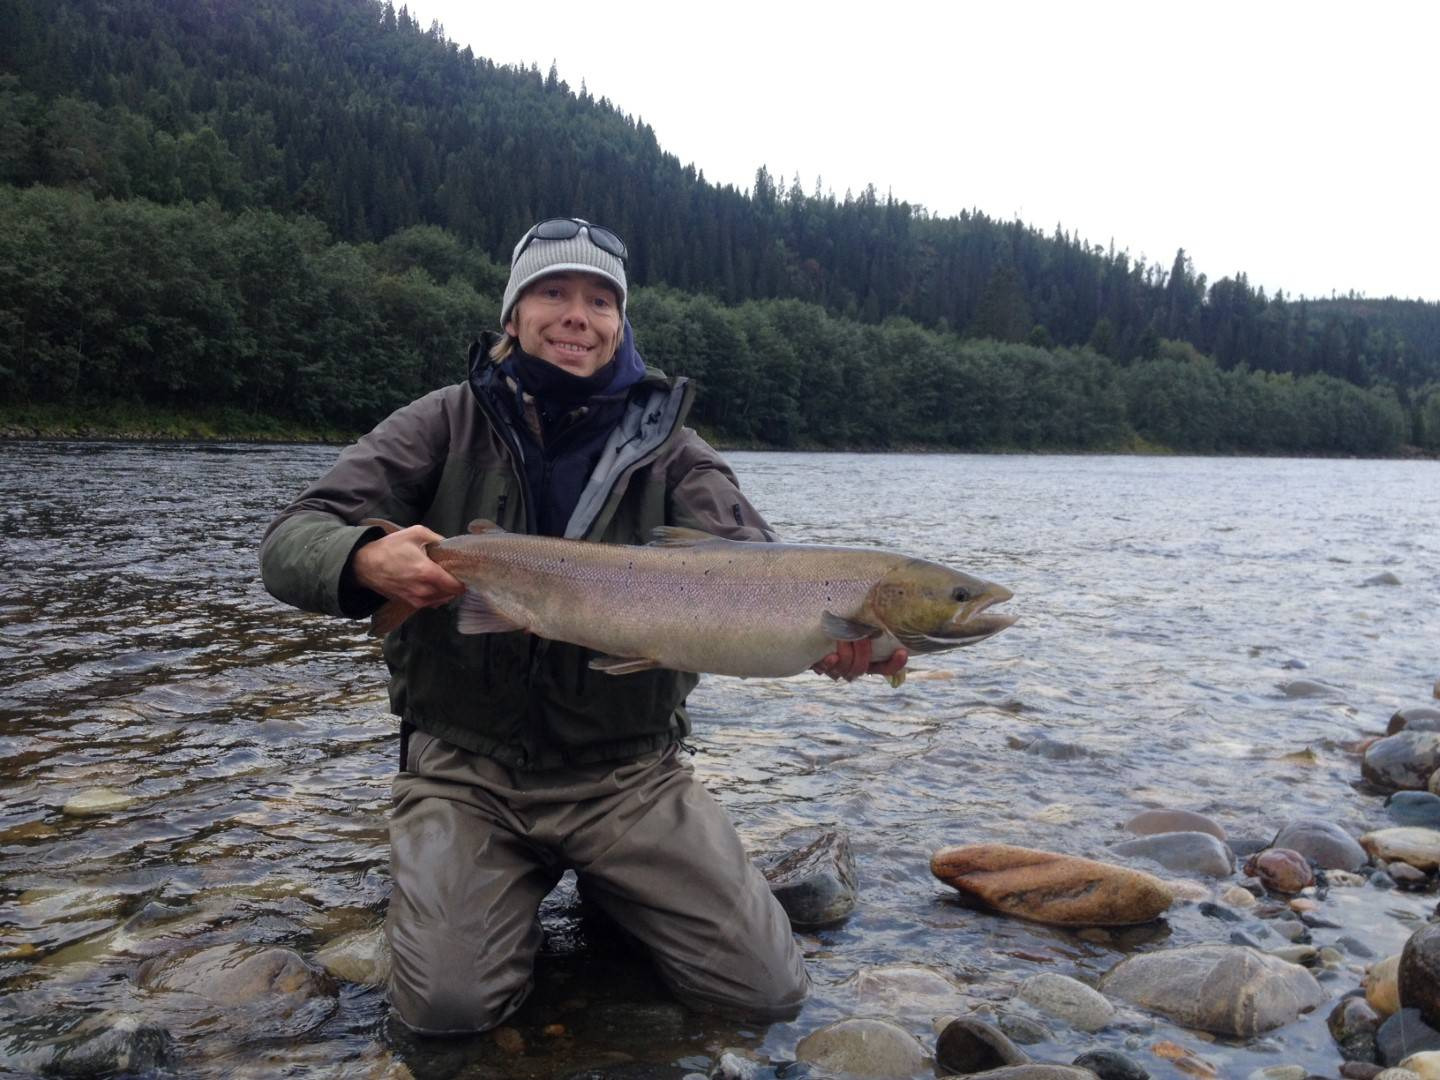 Thies with his fish of about 6kg from Beat B1.